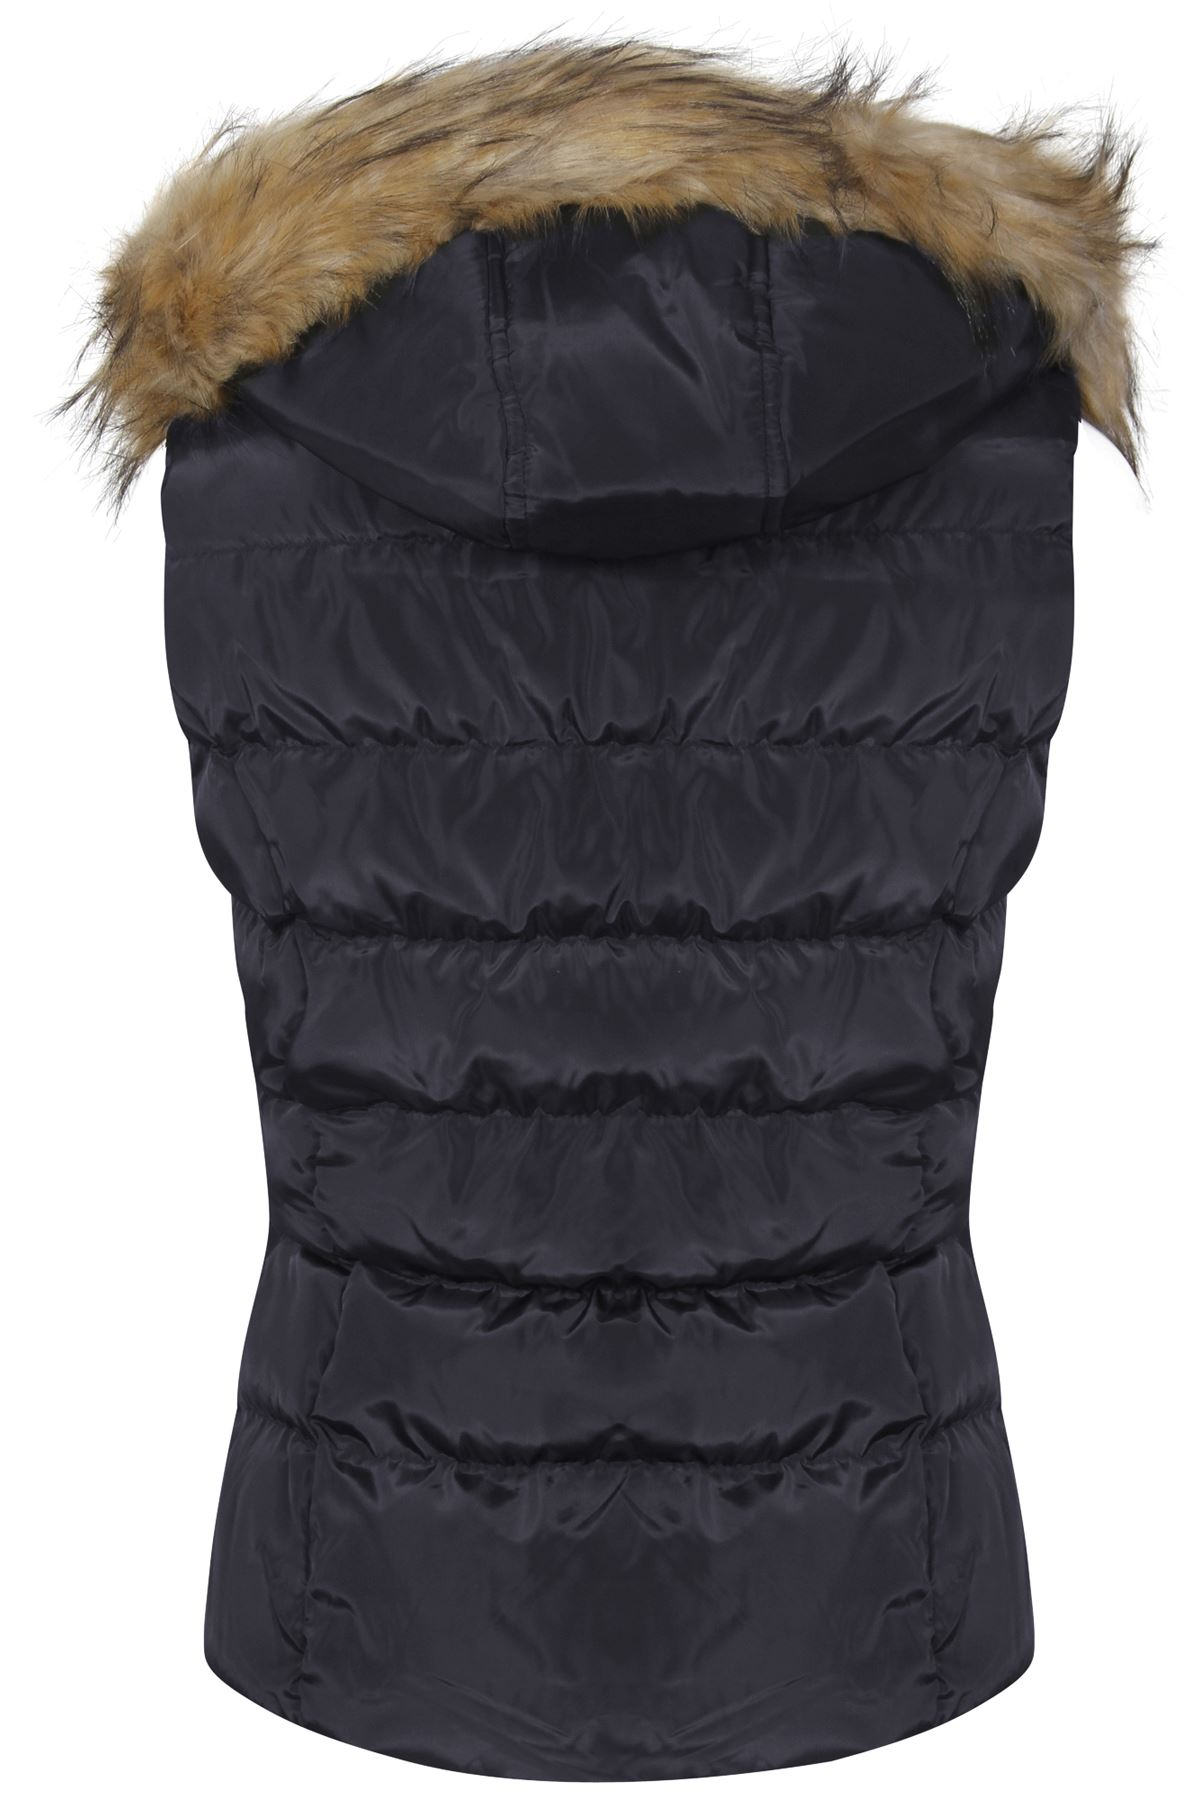 Find great deals on eBay for fur hooded lined parka. Shop with confidence.